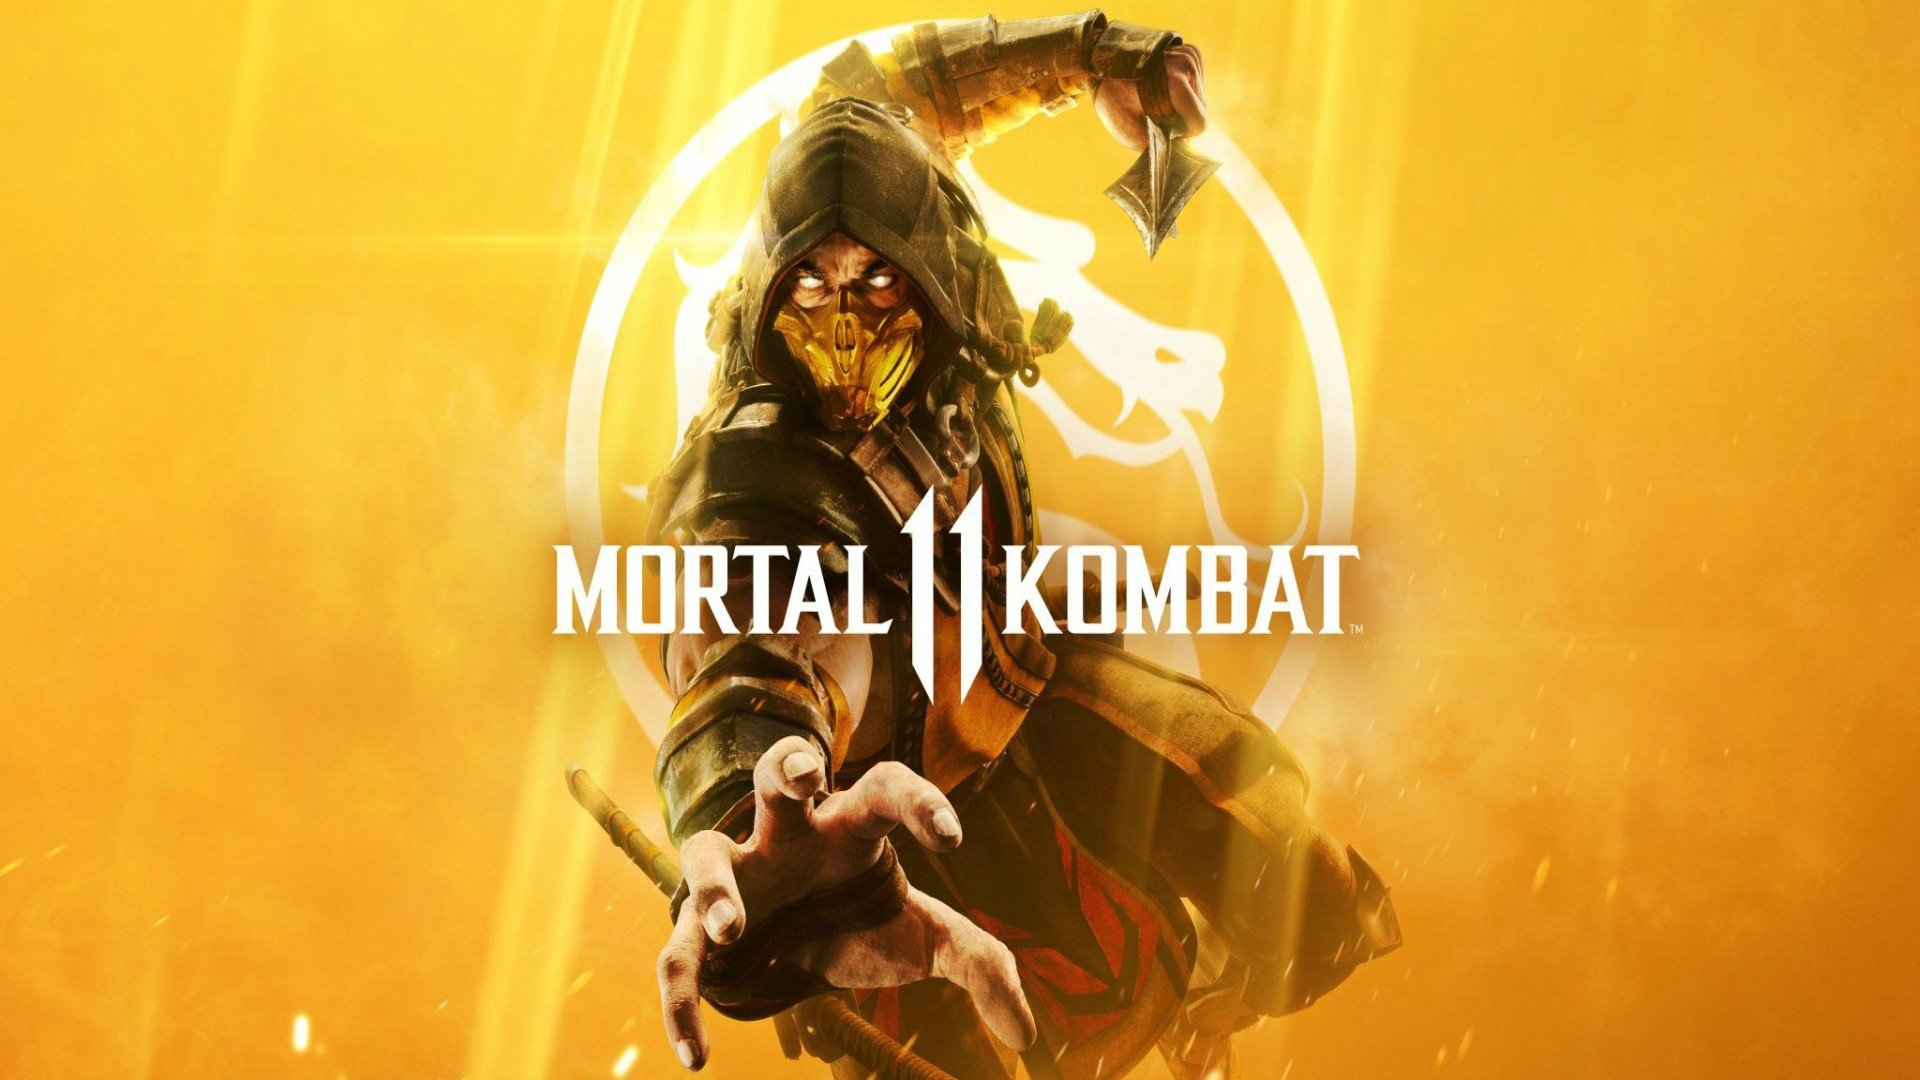 37 mortal kombat 11 hd wallpapers background images wallpaper abyss